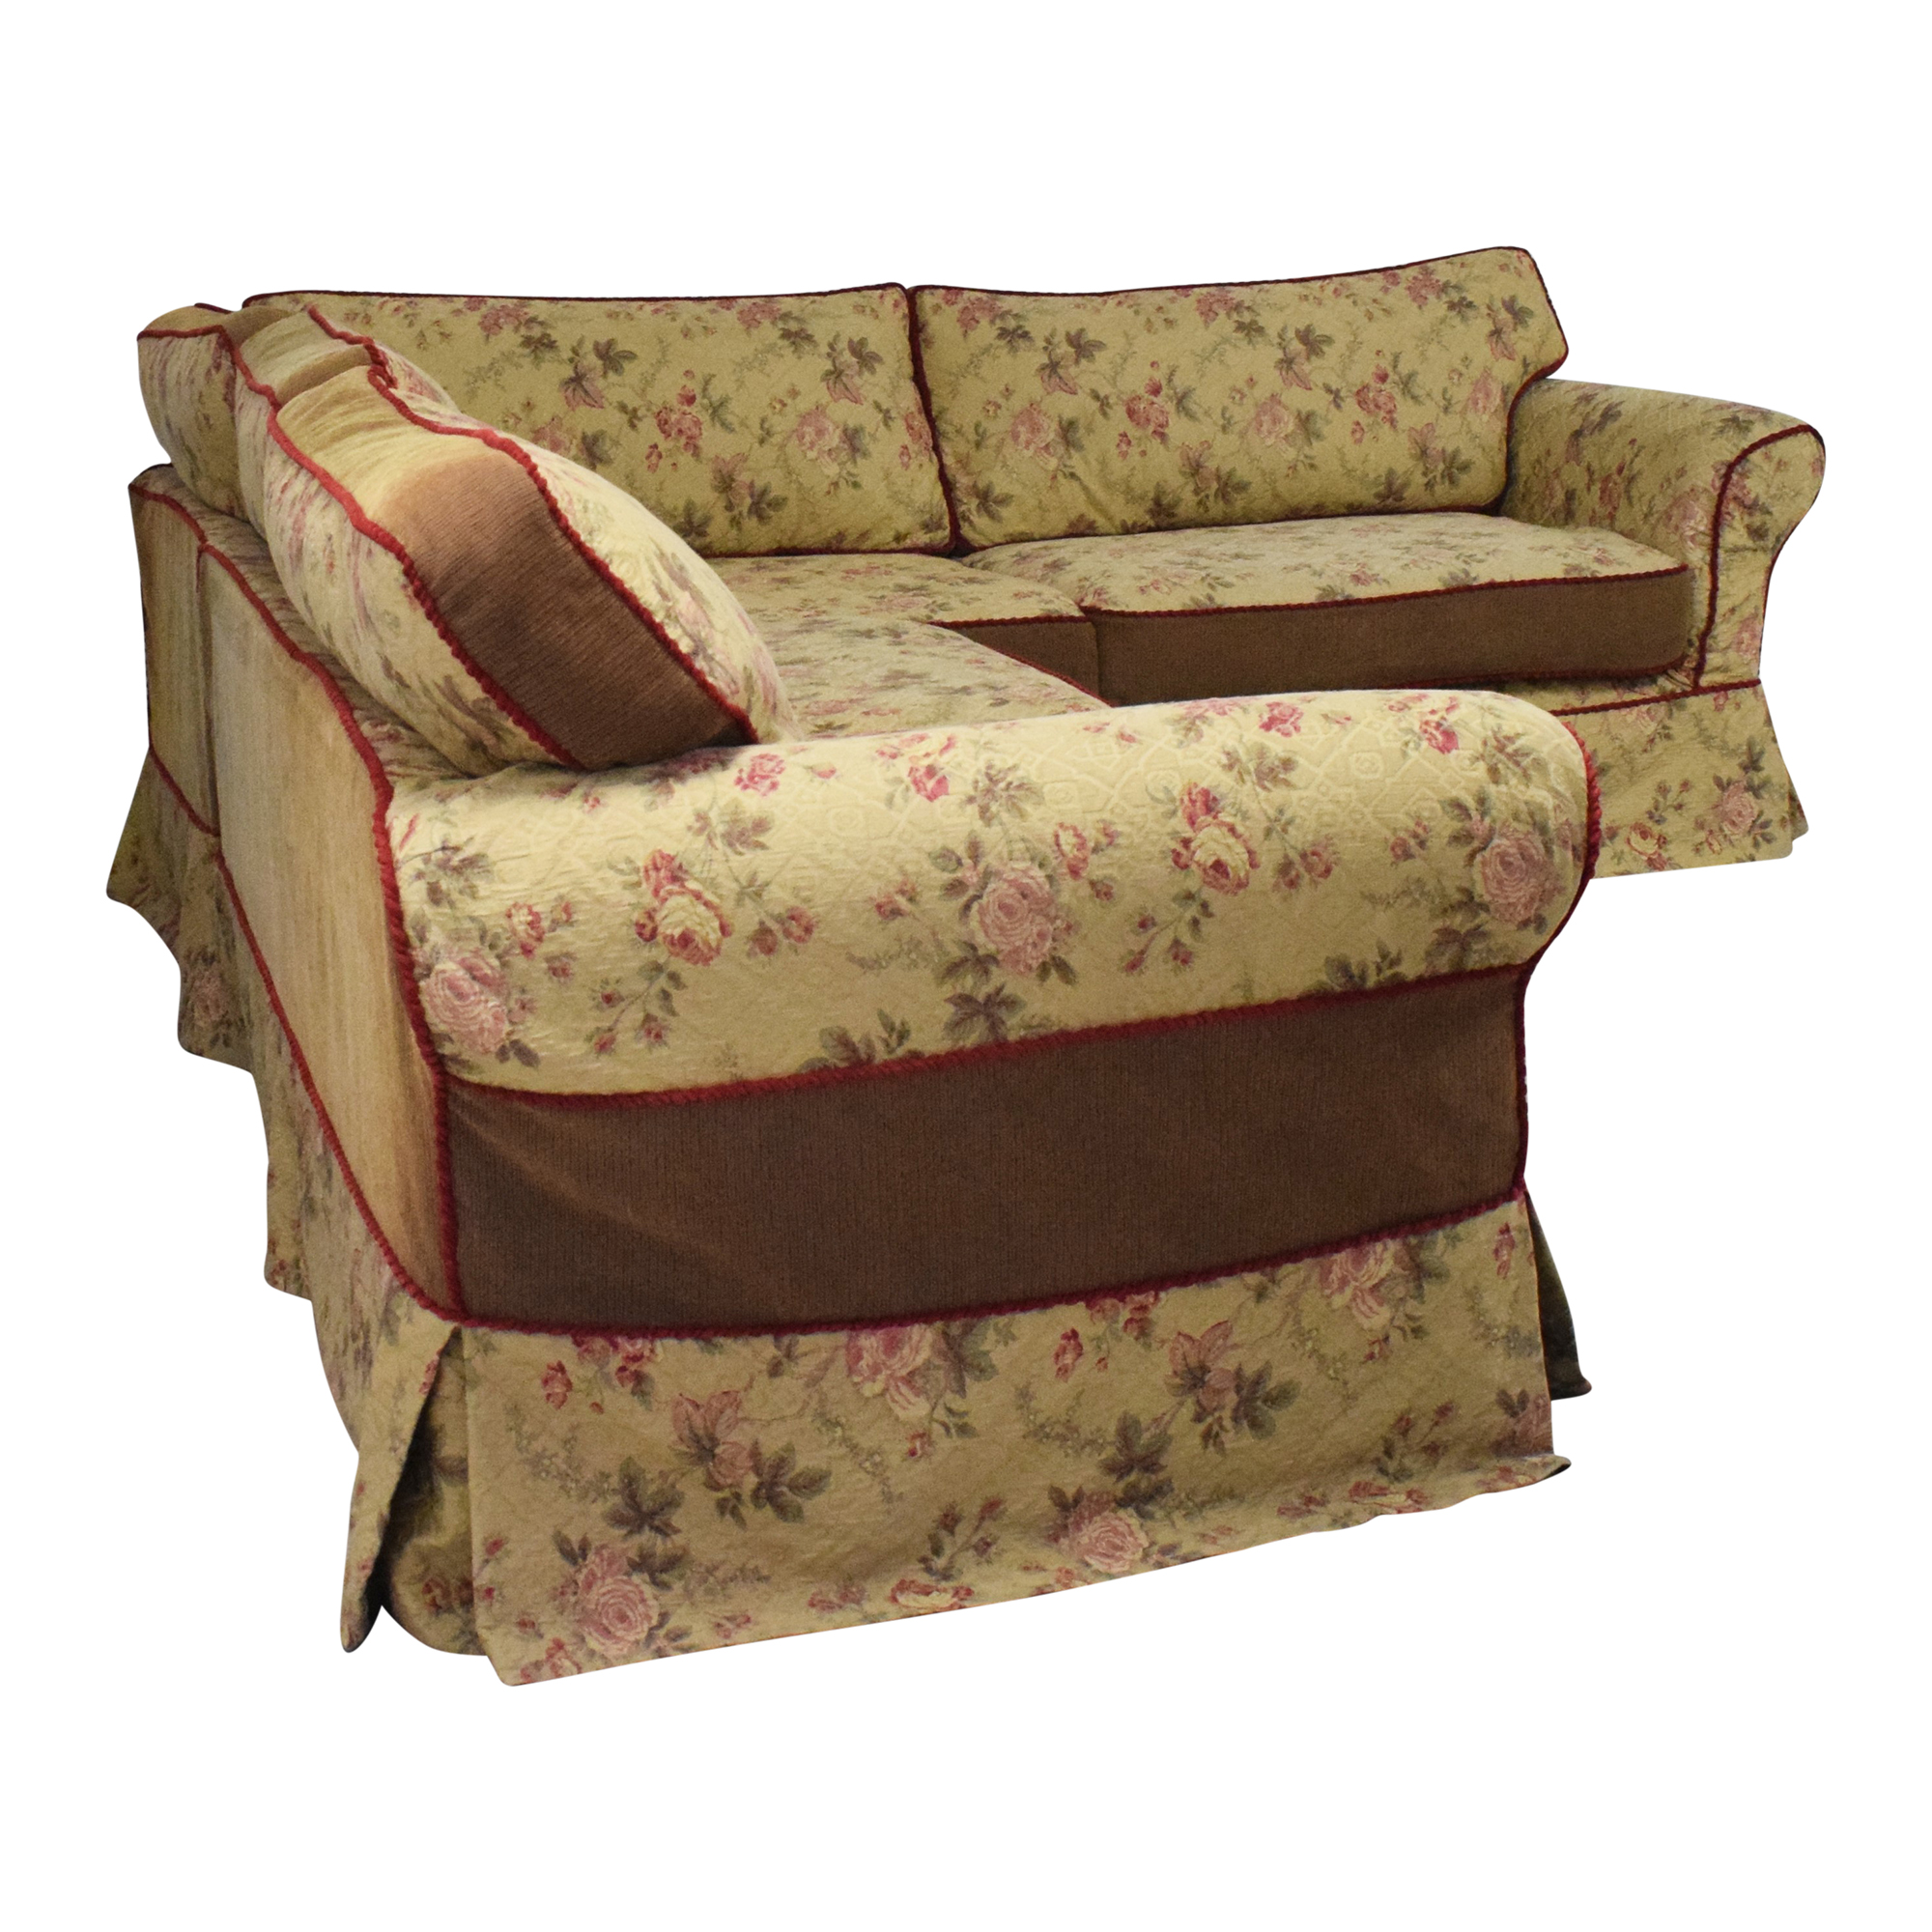 buy Platypus Roll Arm Slipcovered Sectional Sofa Platypus